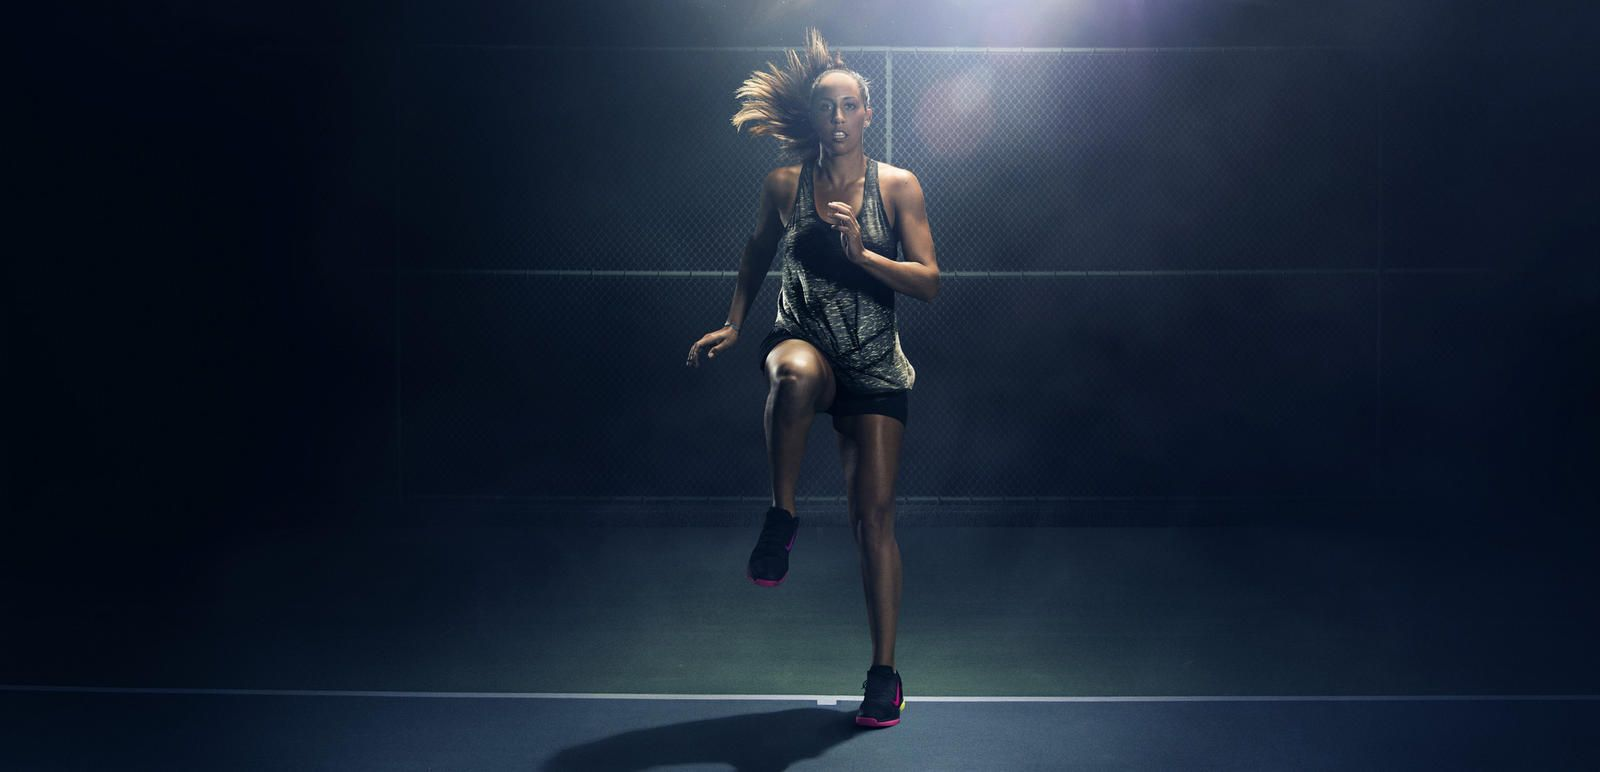 Nike News - Unlimited Greatness Transcends Tennis in NYC